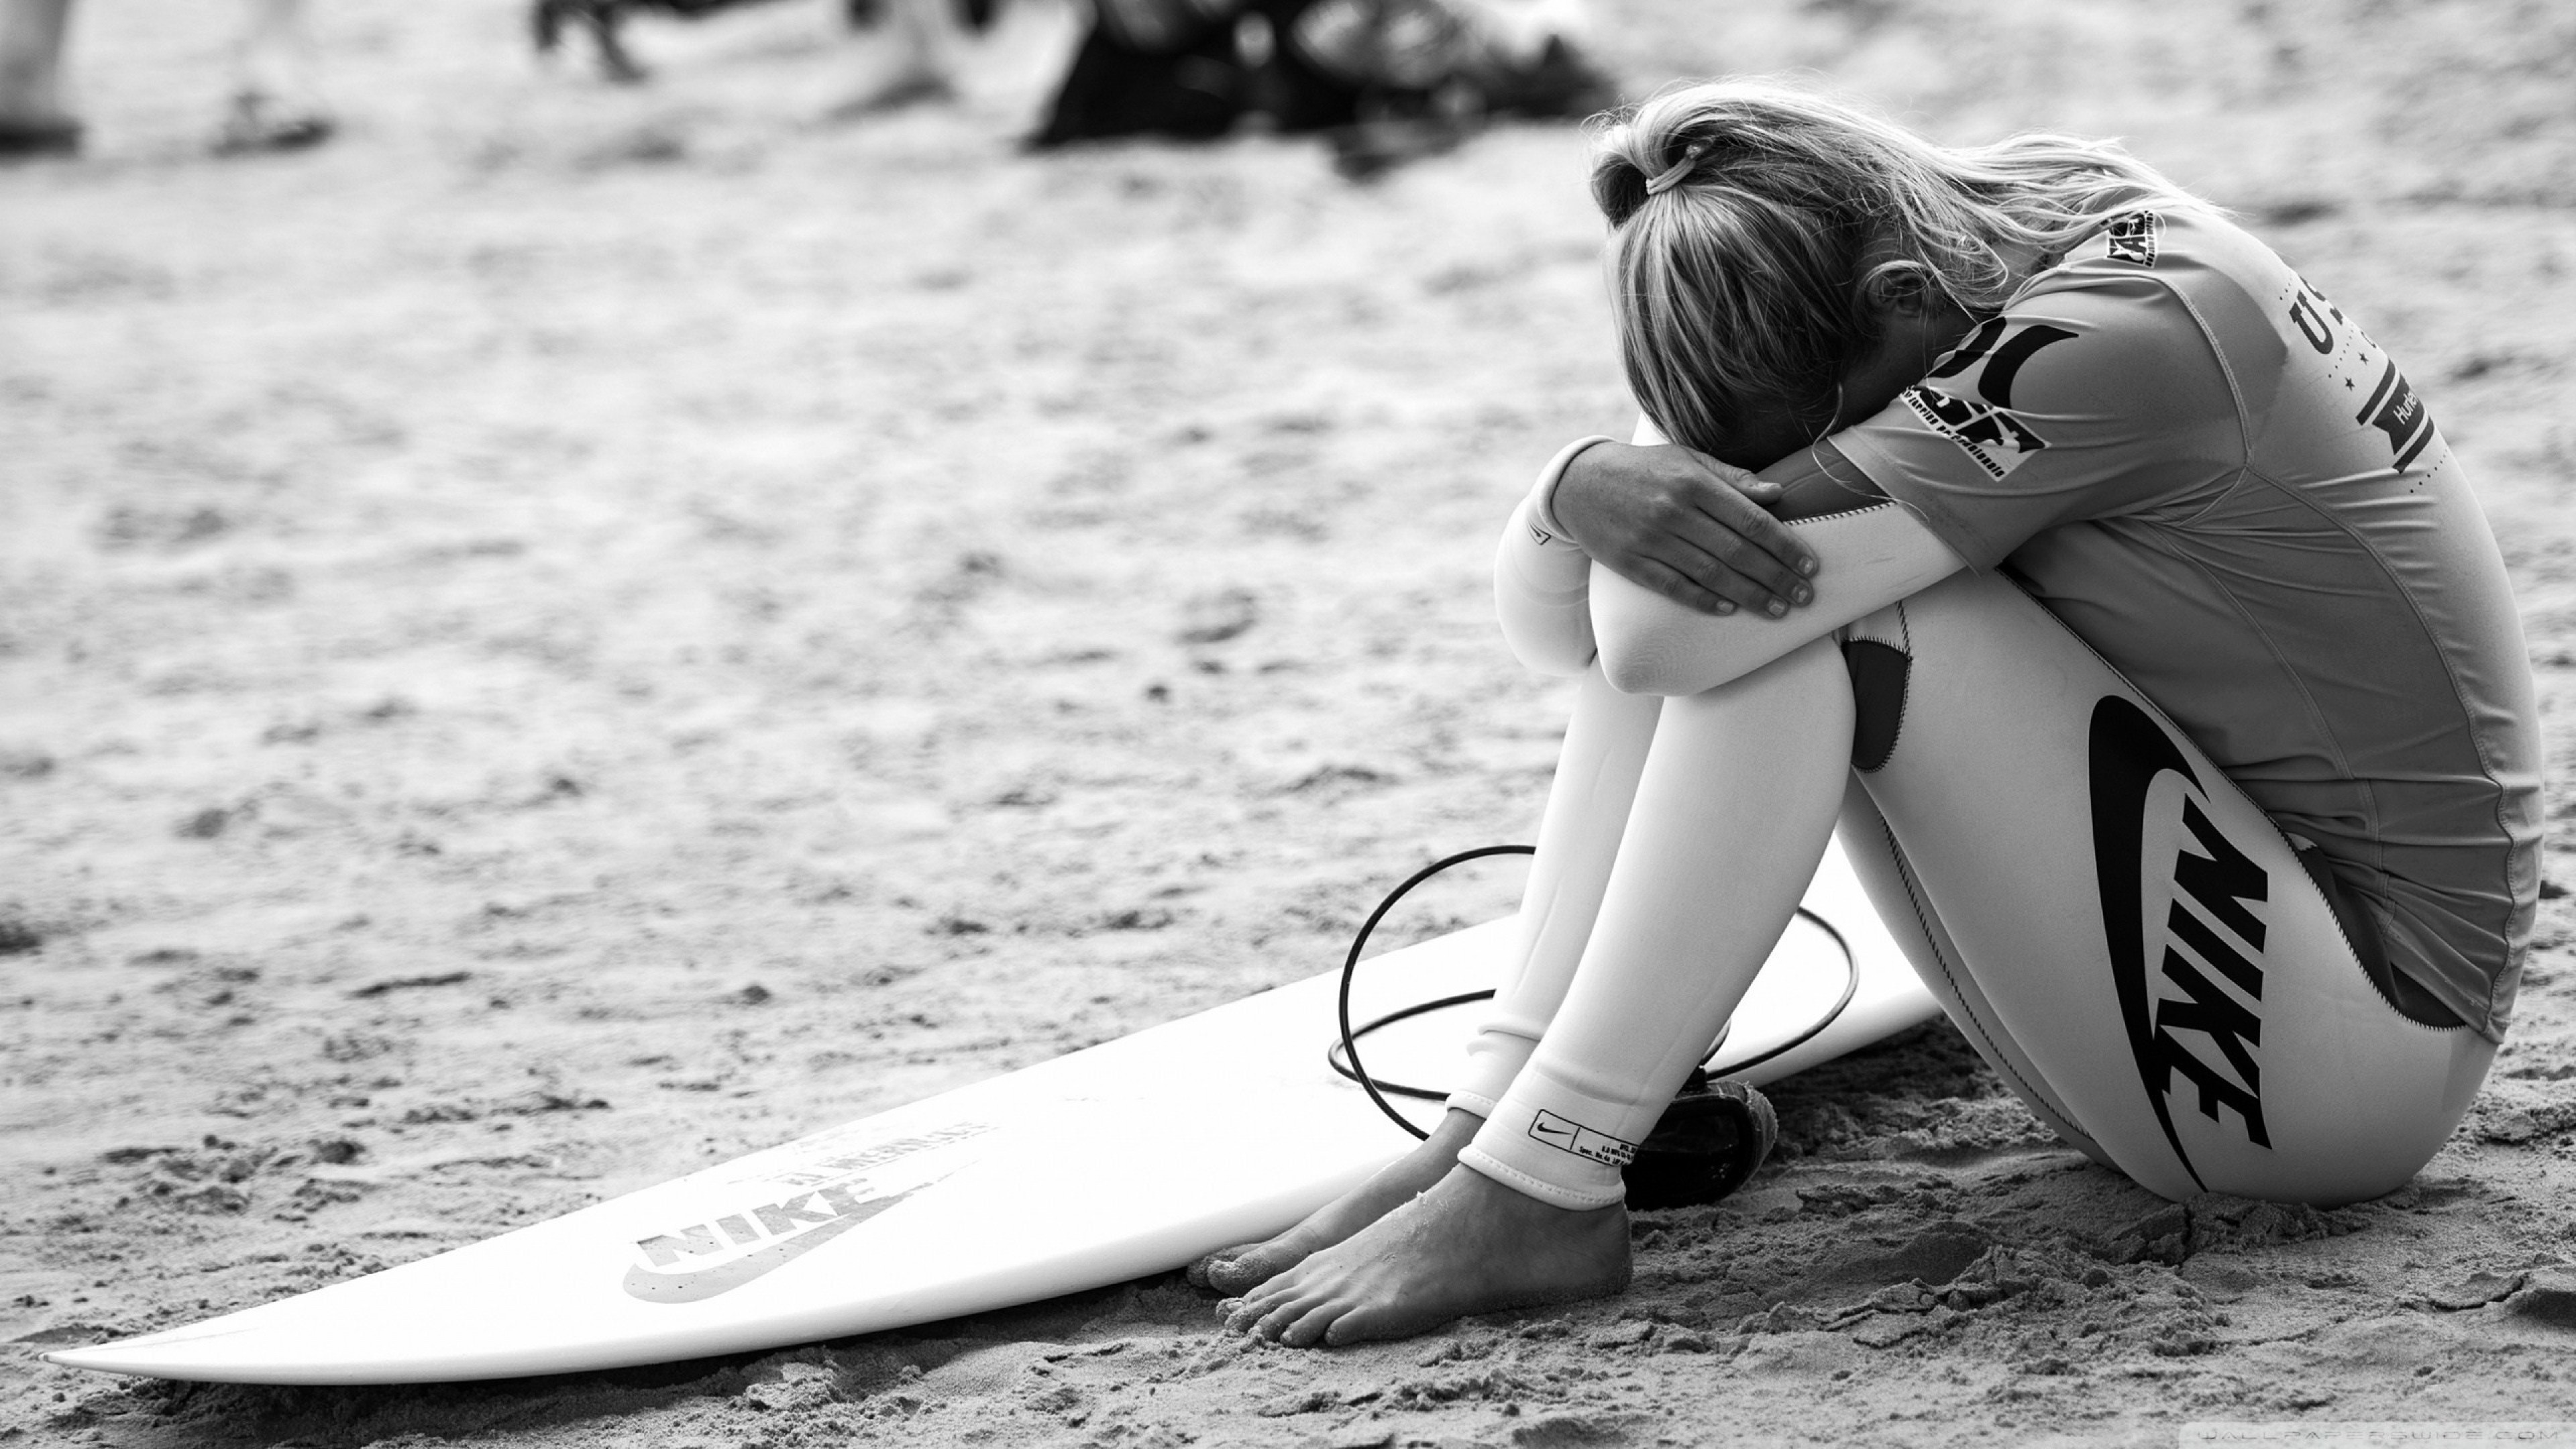 3840x2160 Preview wallpaper surfing, surfer, girl, sport, nike, bw